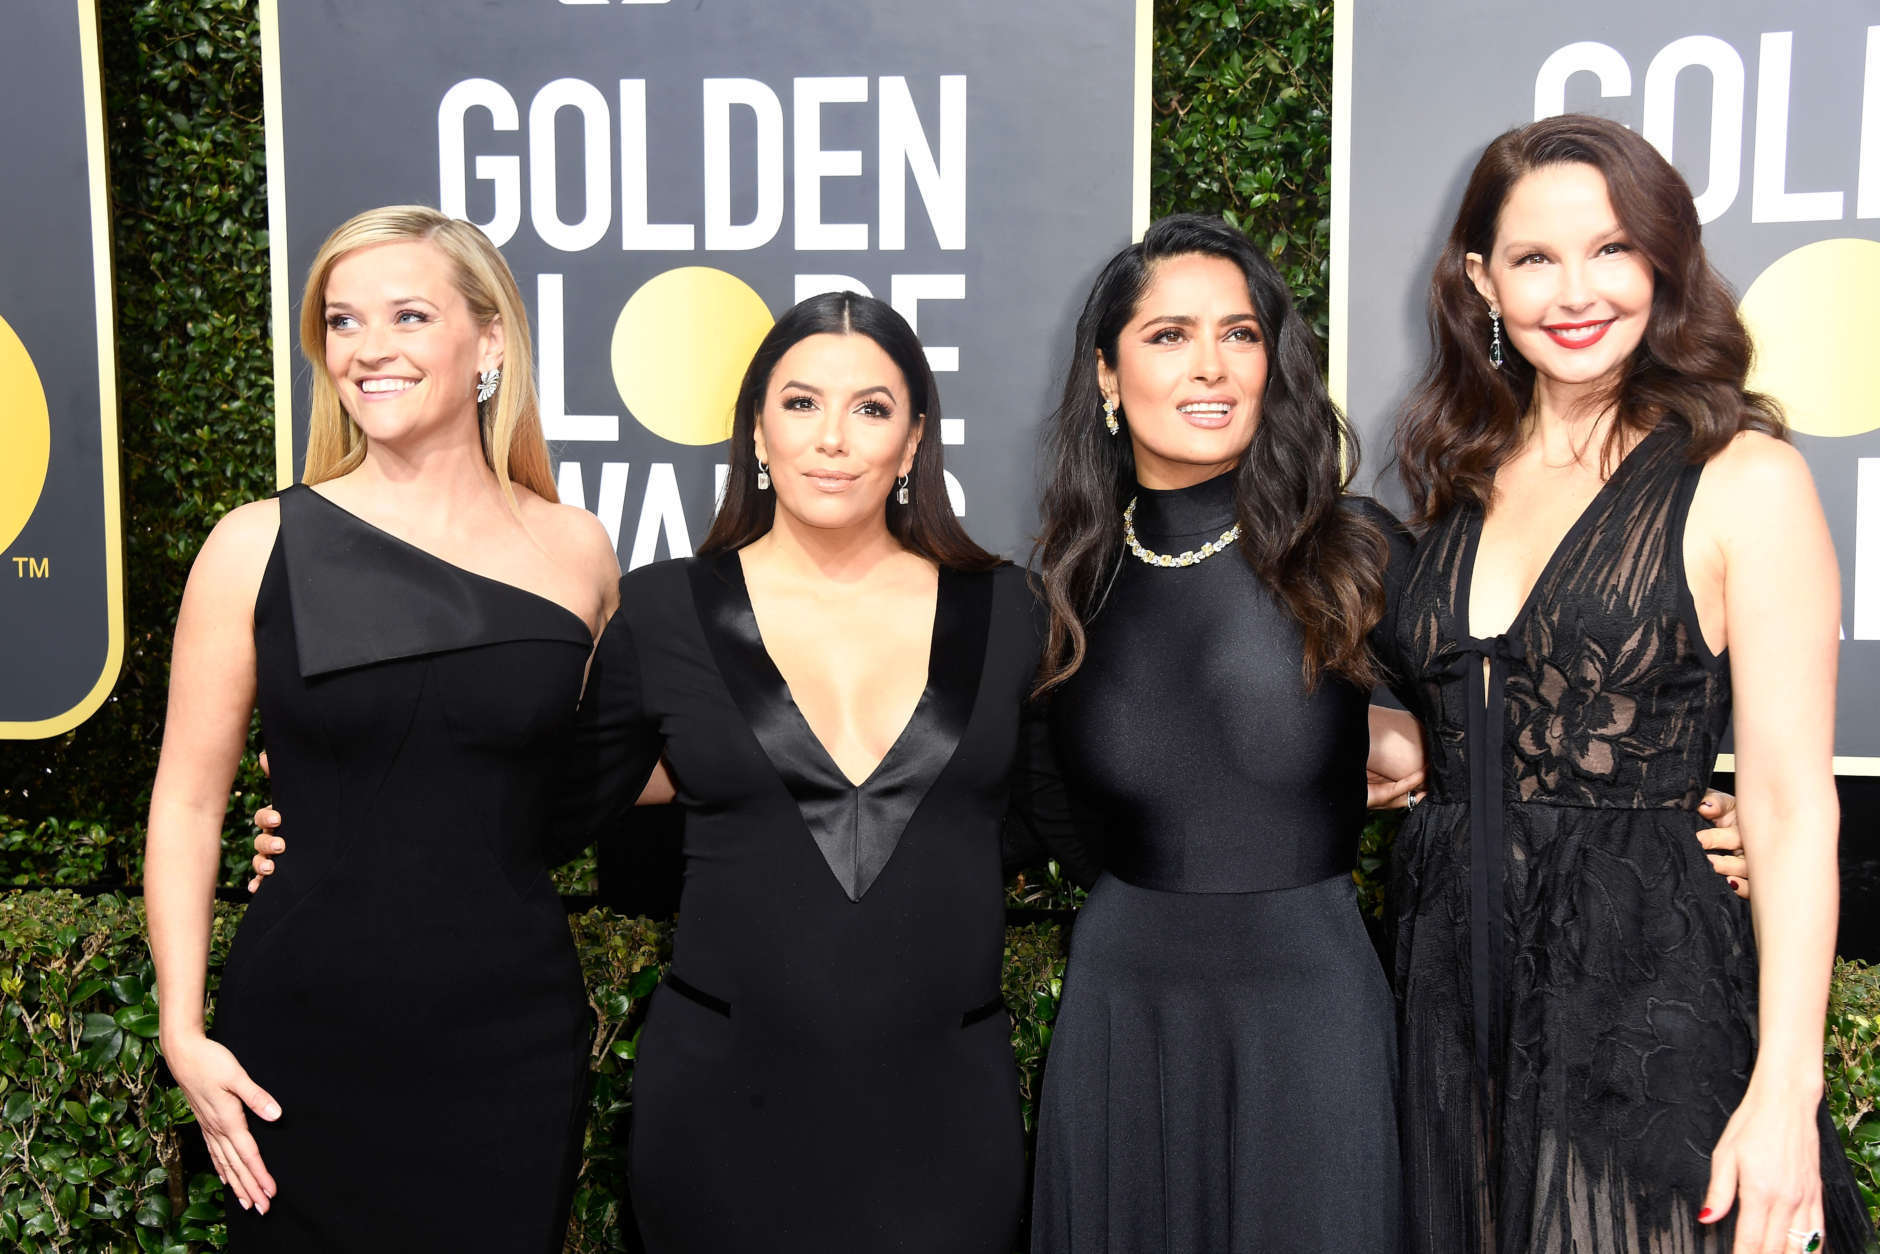 Actors Reese Witherspoon, Eva Longoria, Salma Hayek and Ashley Judd attend The 75th Annual Golden Globe Awards at The Beverly Hilton Hotel on January 7, 2018 in Beverly Hills, California.  (Photo by Frazer Harrison/Getty Images)